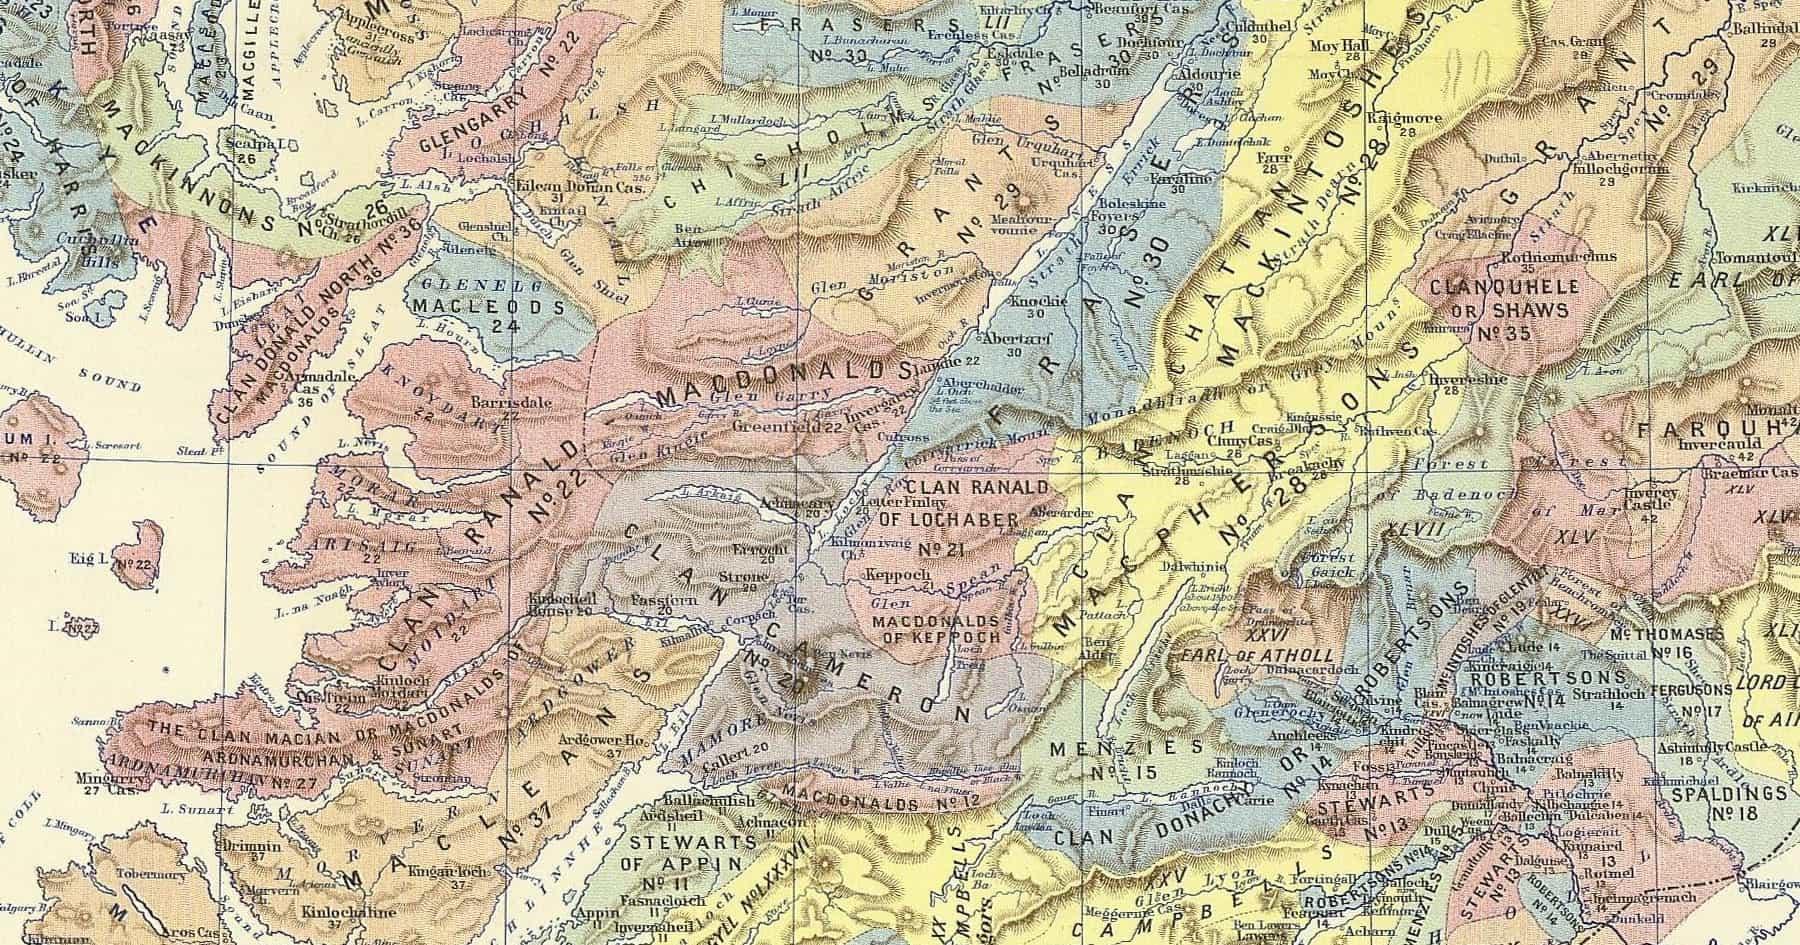 Clan Map of the Highland Clans of Scotland